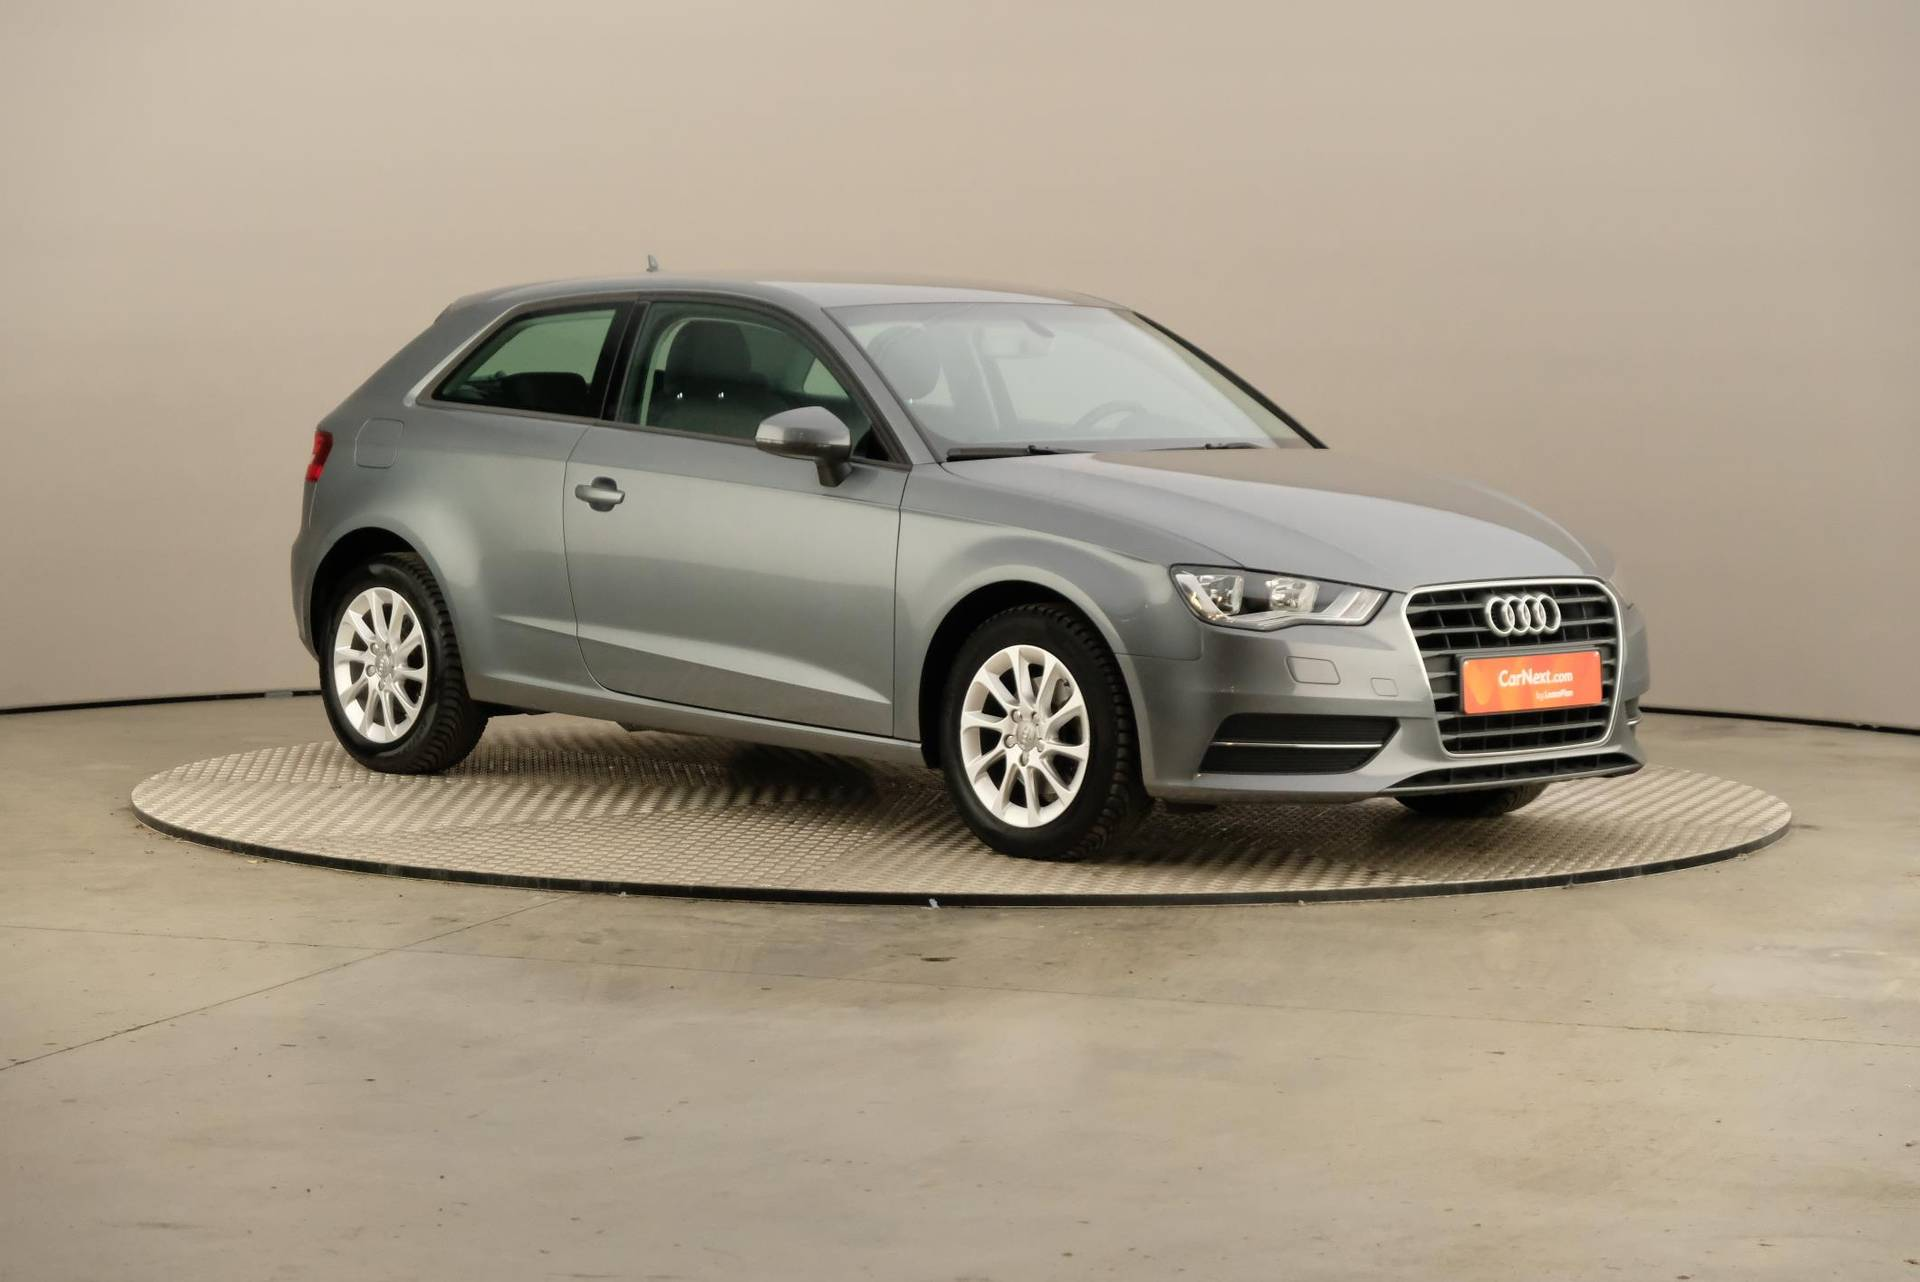 Audi A3 1.6 TDi ULTRA Attraction GPS PDC BLUETOOTH, 360-image26